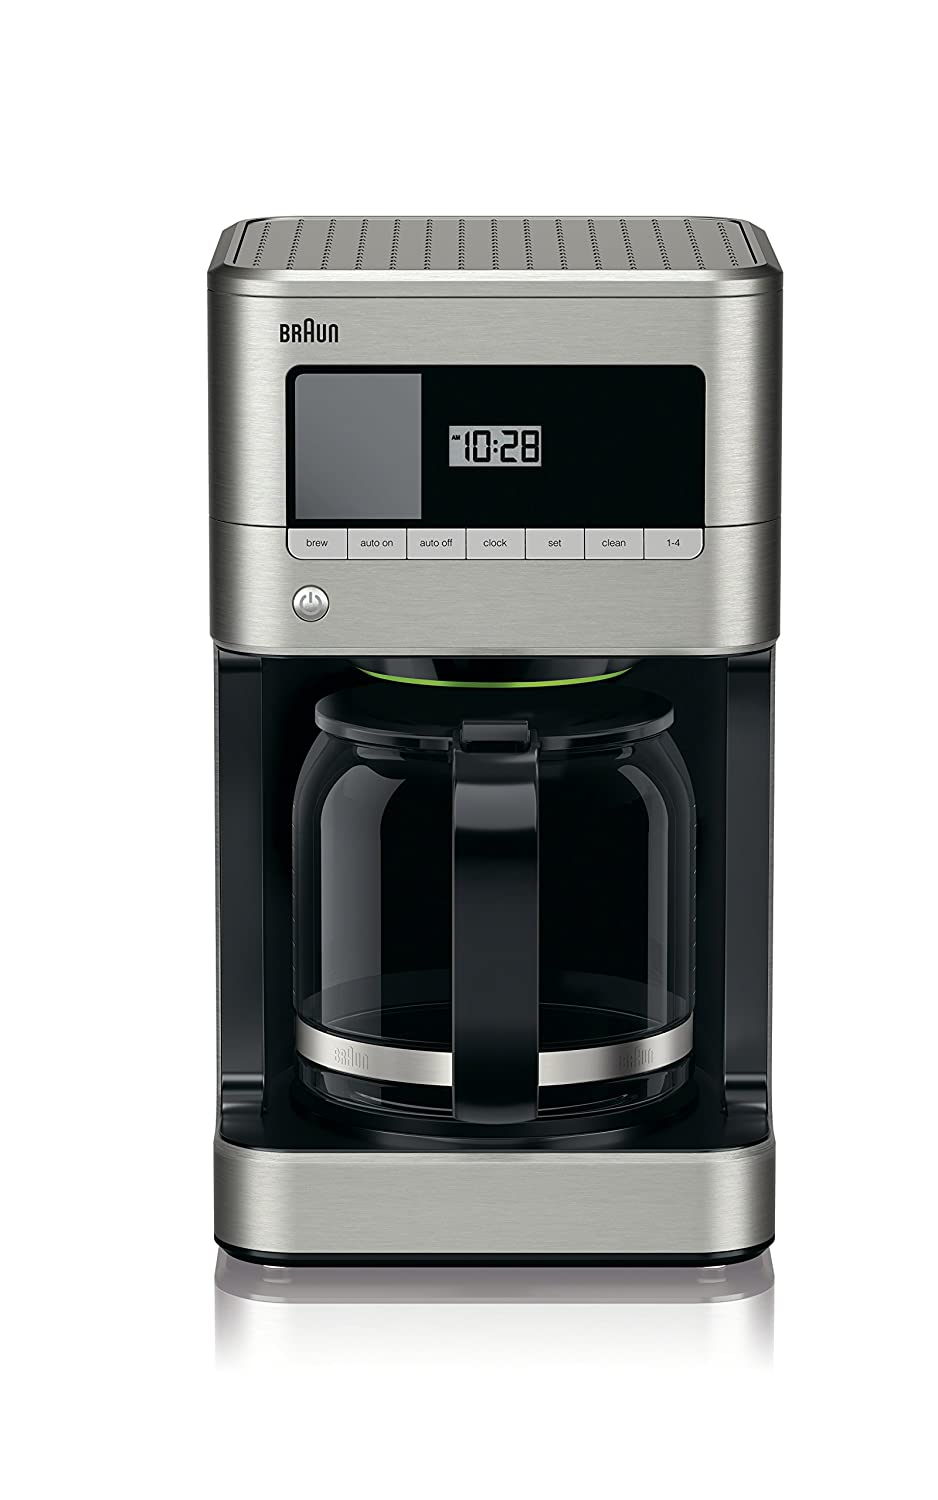 Braun KF7070 BrewSense Drip Glass Coffeemaker 12 Cup Stainless Steel